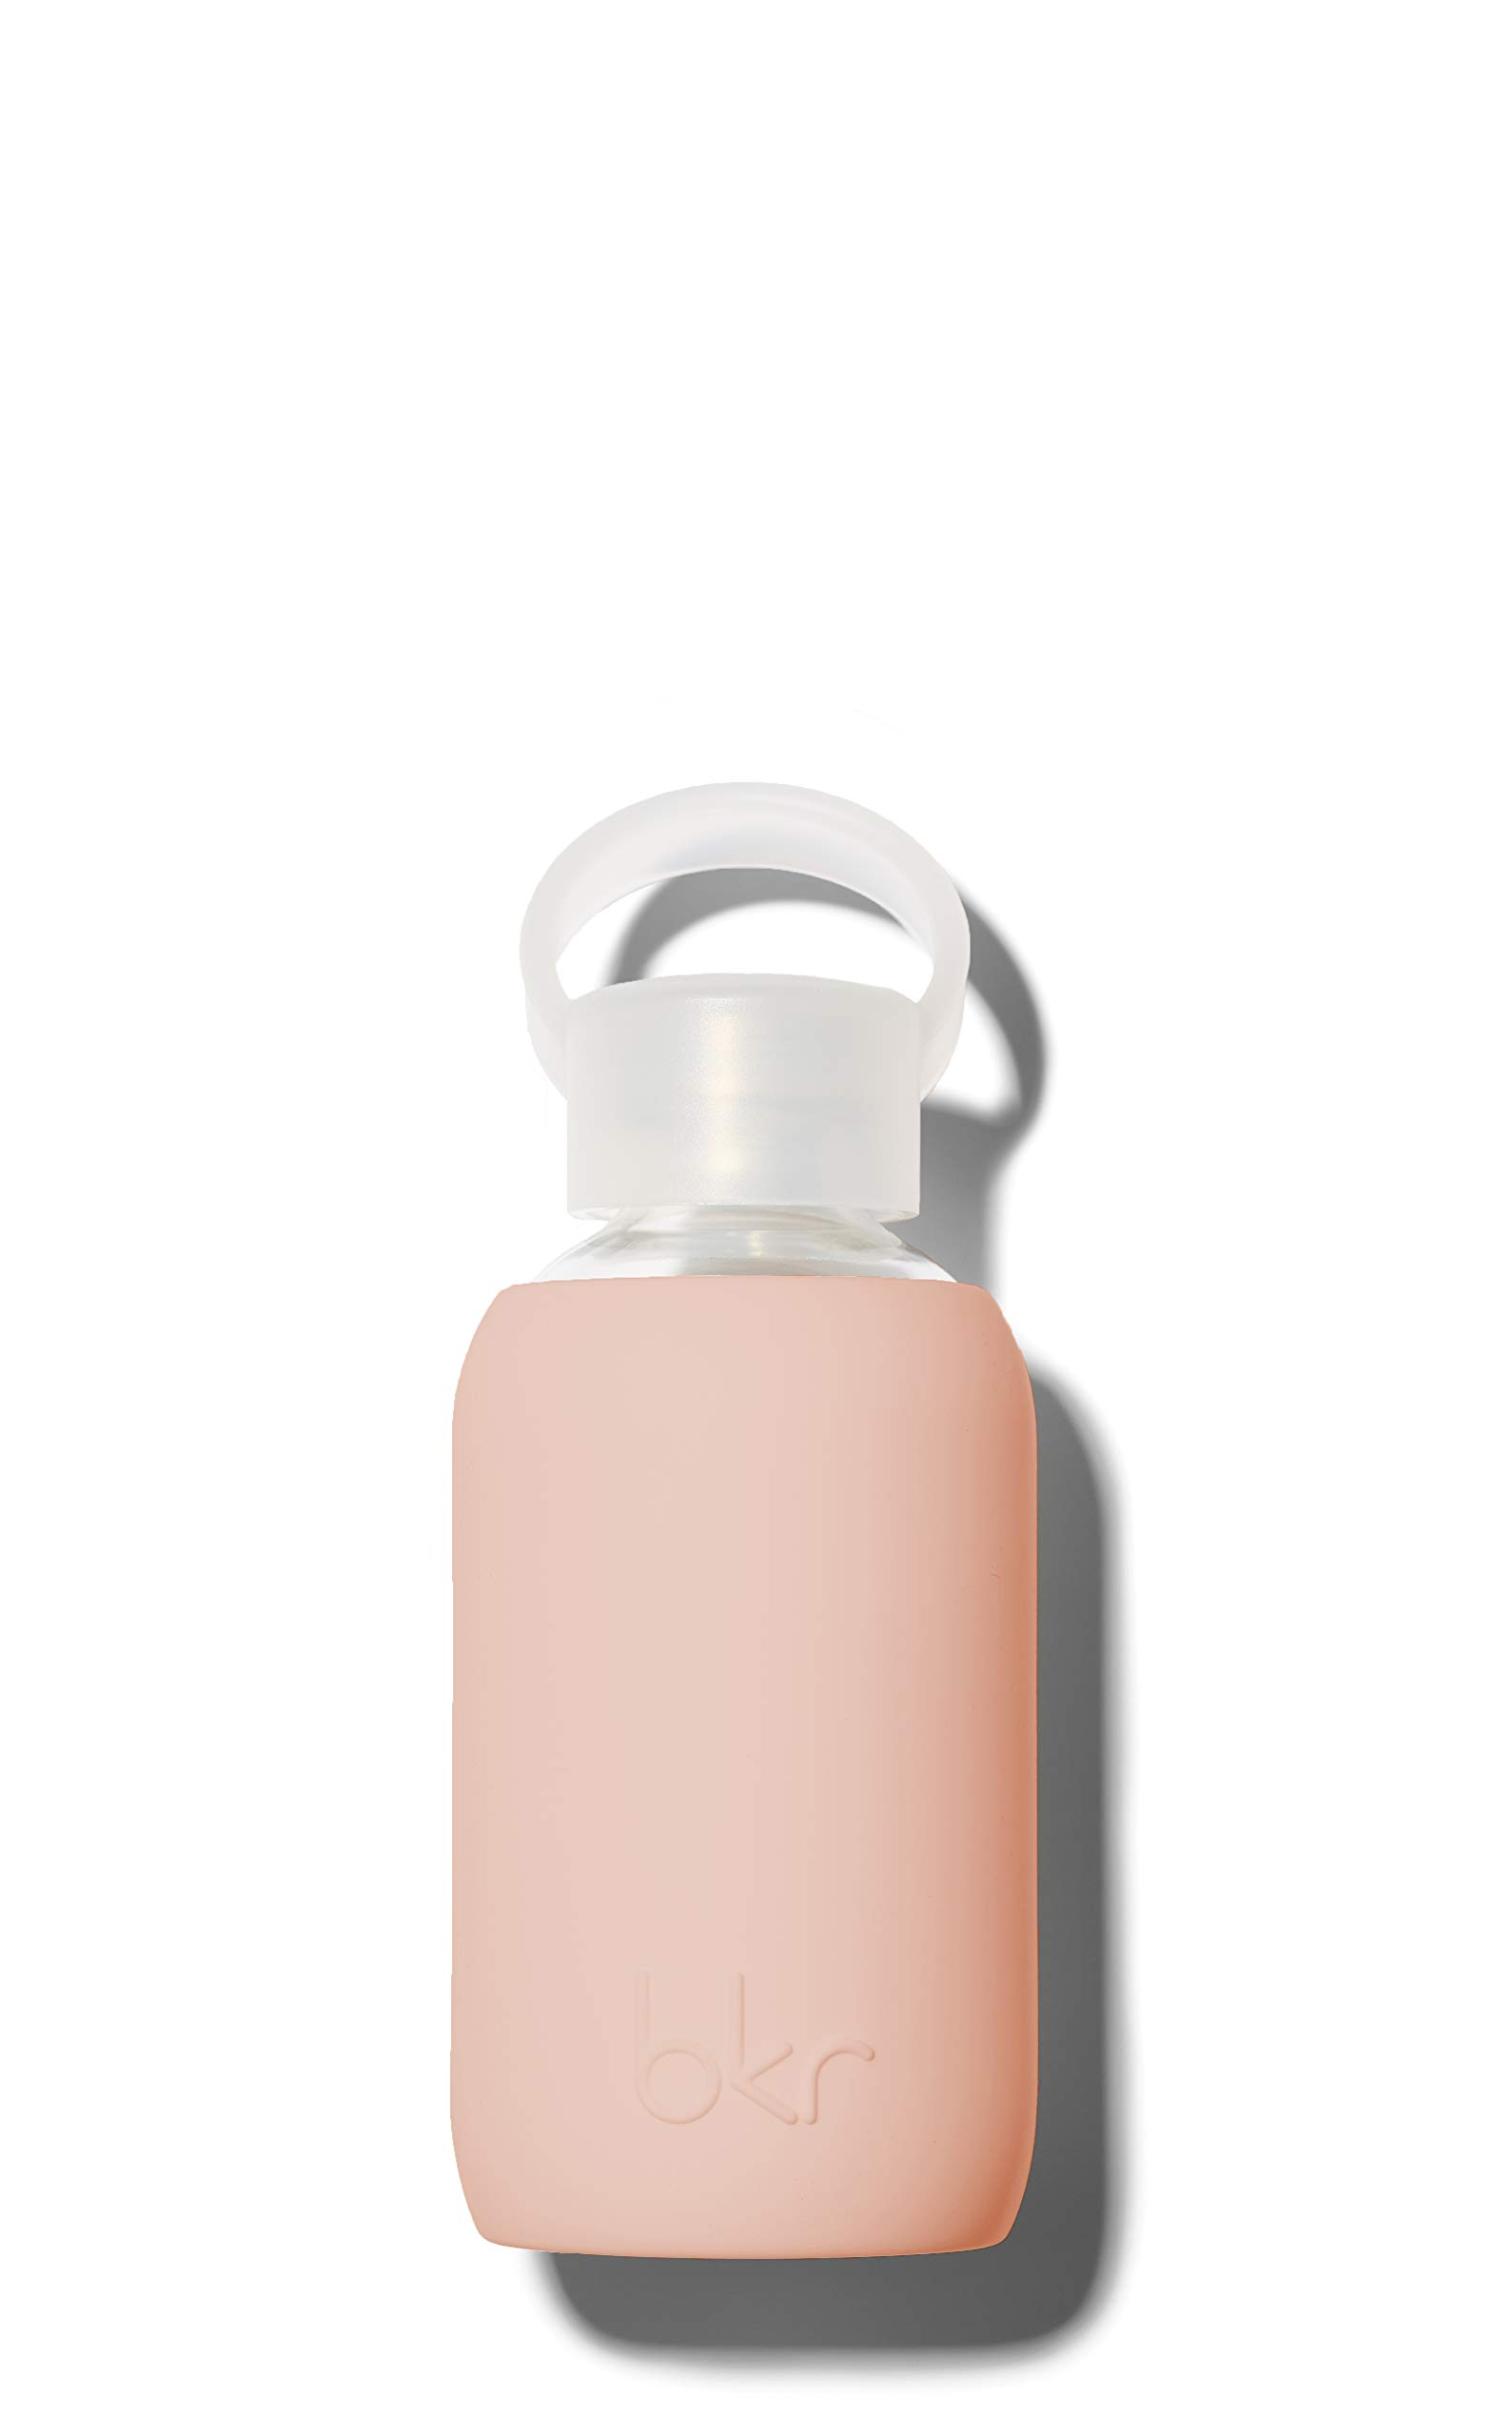 bkr Naked Glass Water Bottle with Smooth Silicone Sleeve for Travel, Narrow Mouth, BPA-Free & Dishwasher Safe, Opaque Light Chocolate Milk Nude, 8 oz / 250 mL by bkr (Image #1)